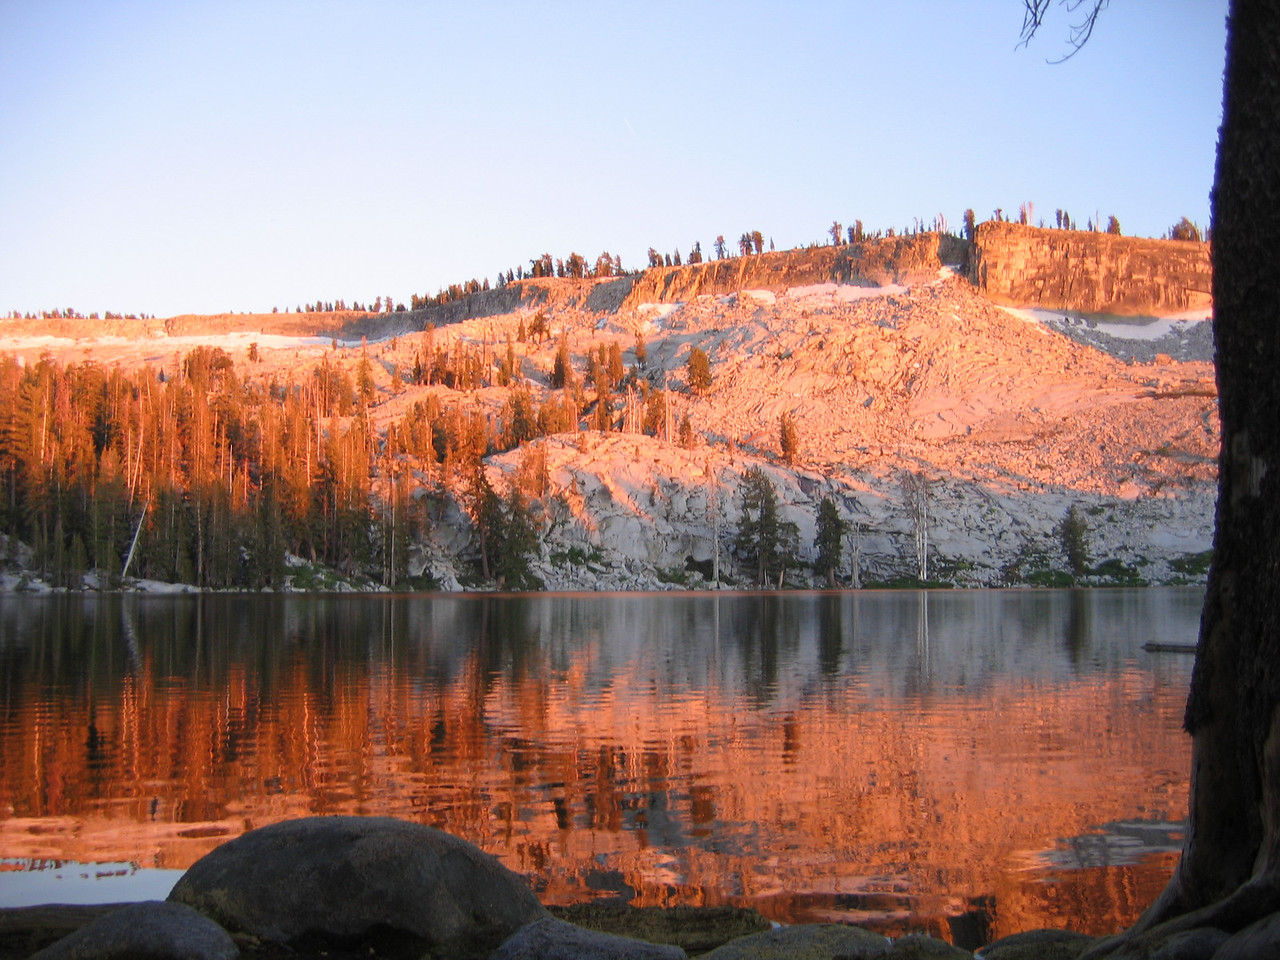 Ostrander Lake at sunset.